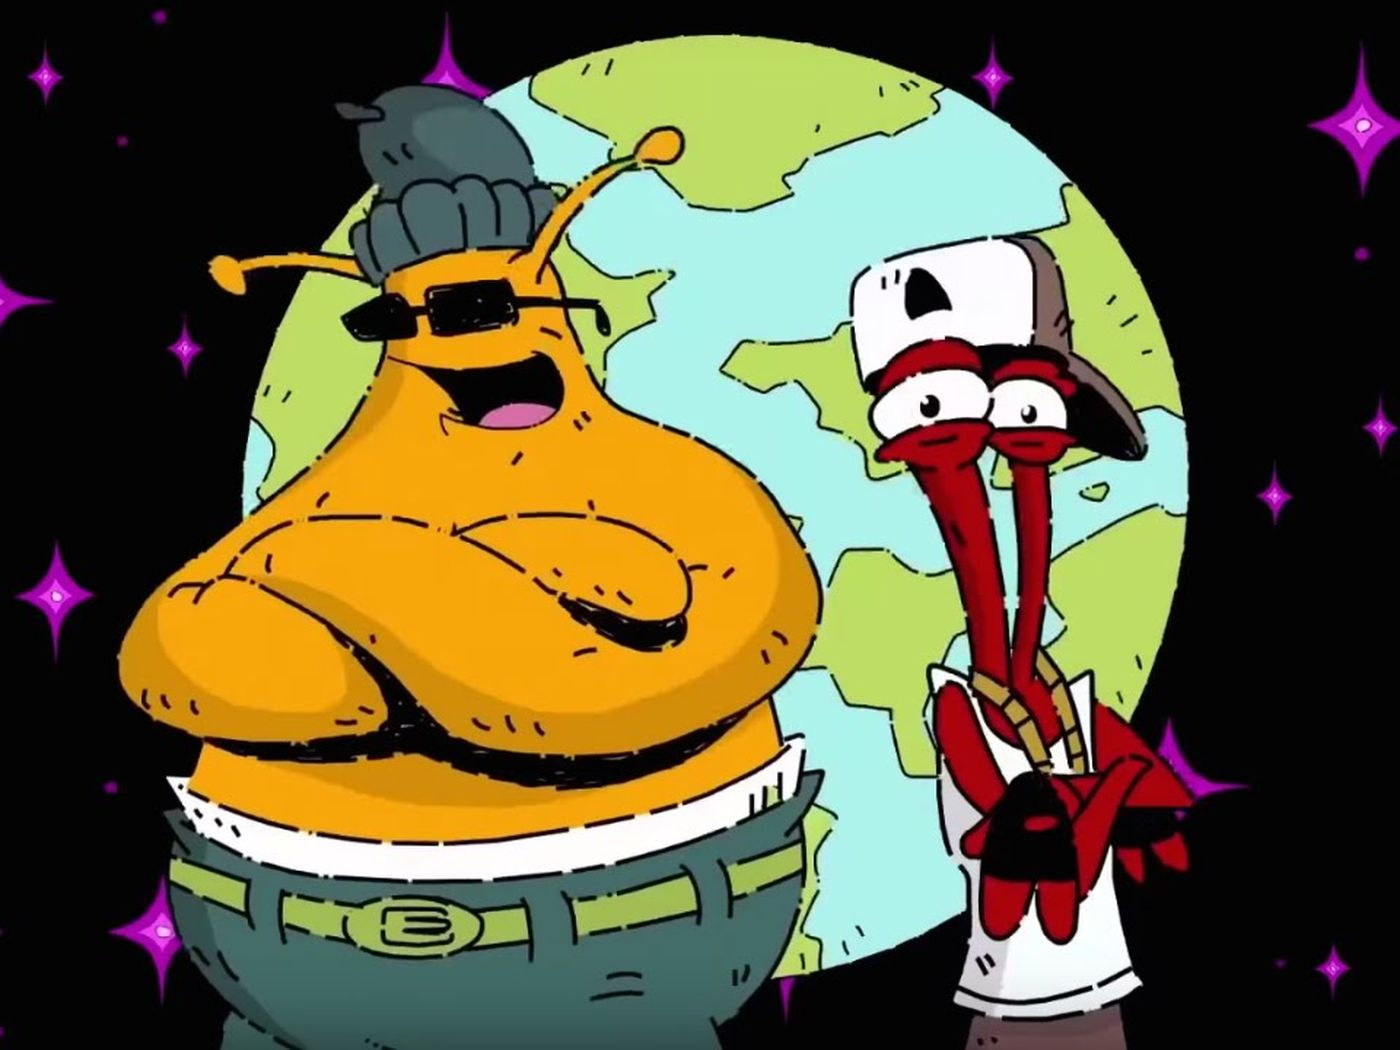 We'll hear more about that new ToeJam & Earl game in less than a week screenshot